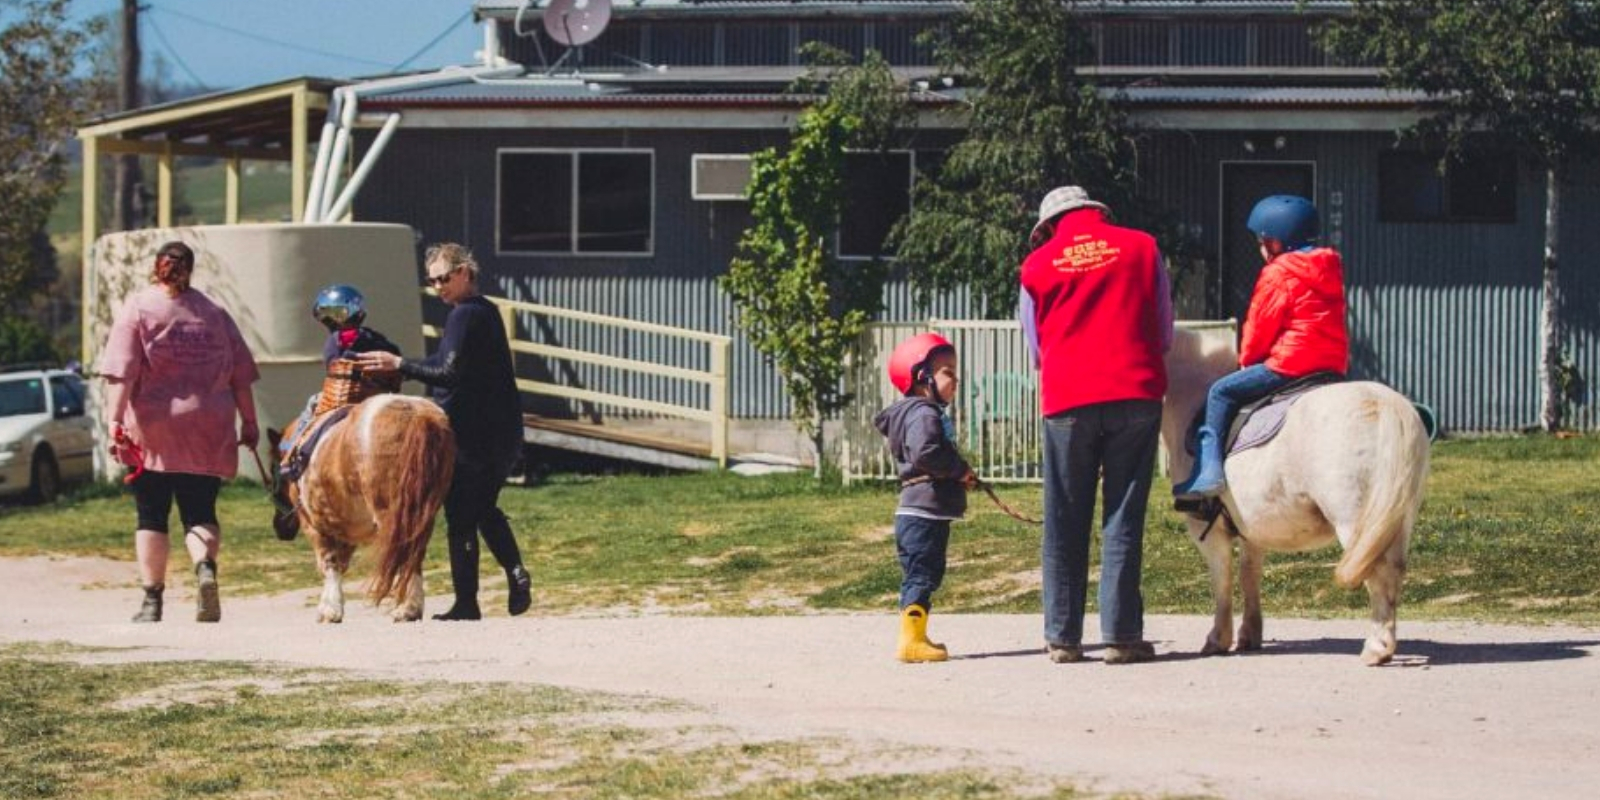 pony rides in Bathurst